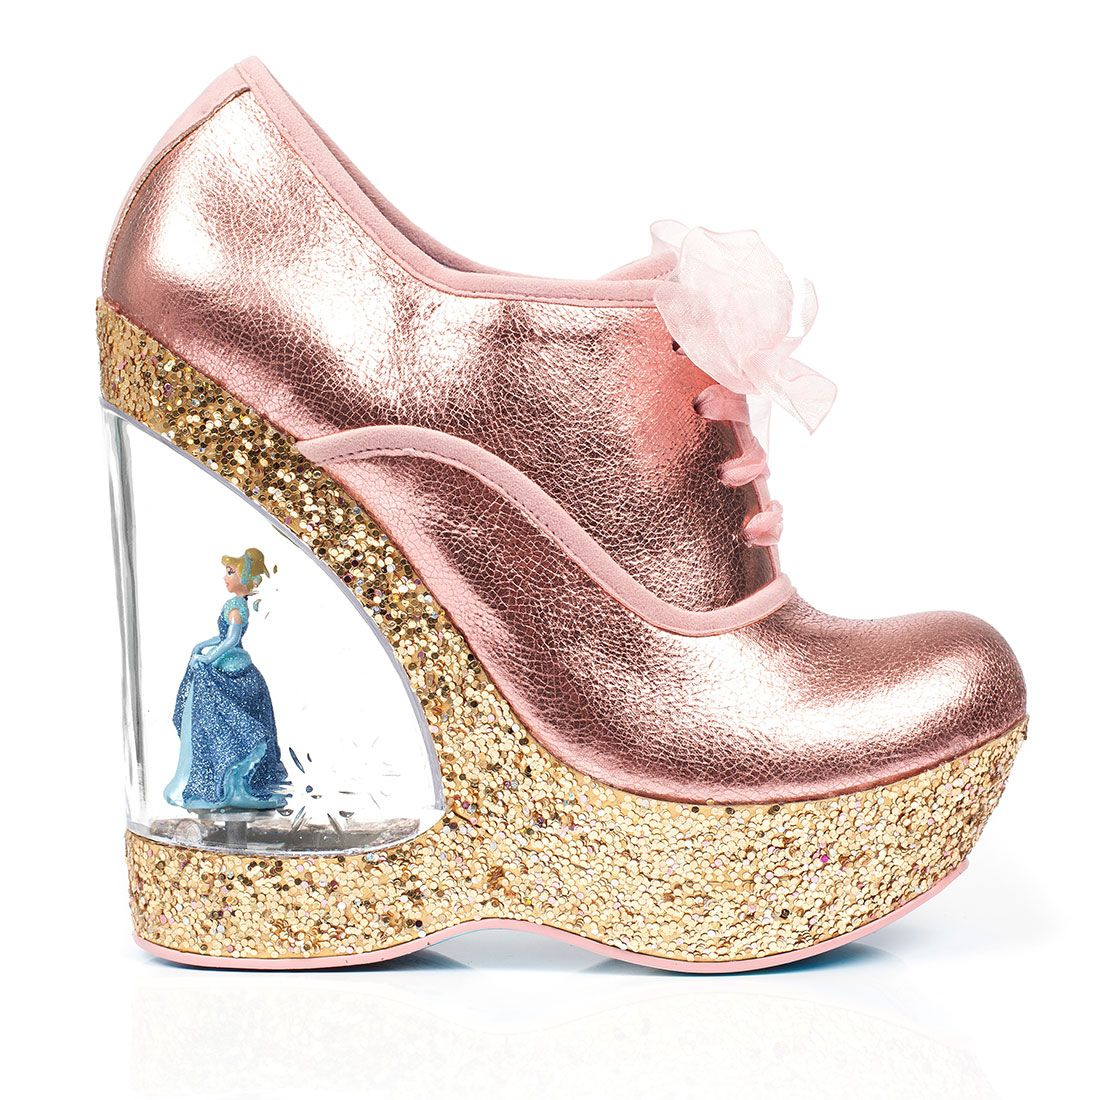 7cb5306482 Irregular Choice Home Before 12 Womens Wedges Copper New Shoes ...